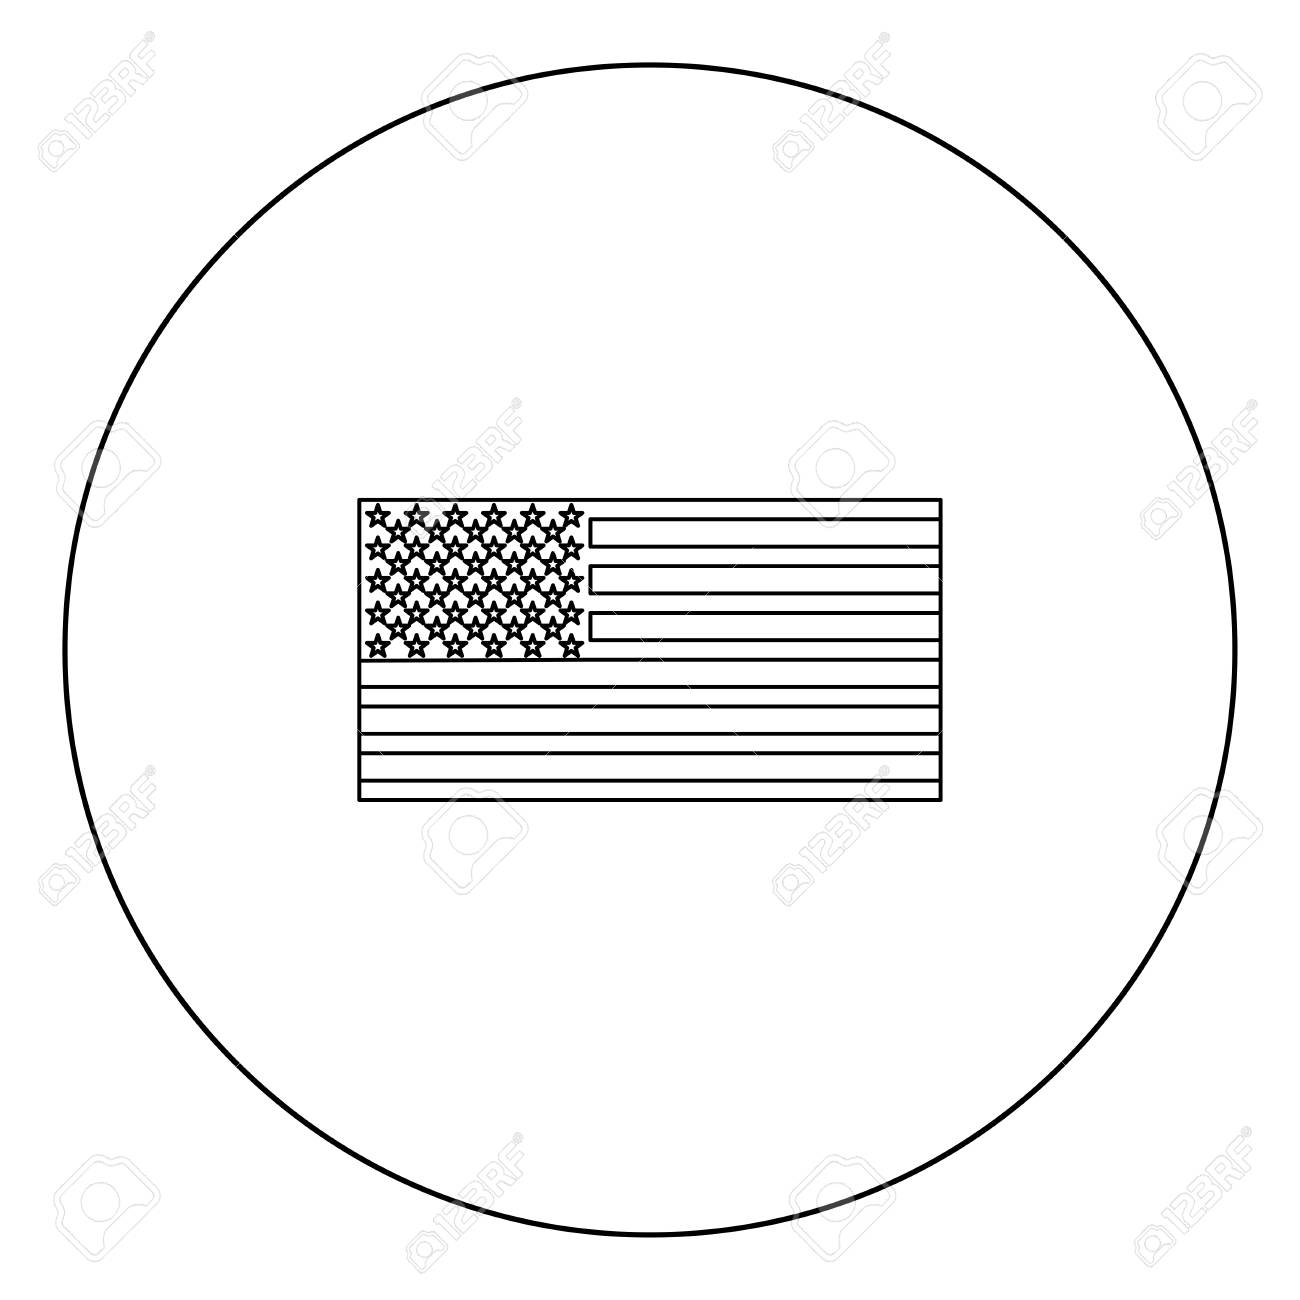 American Flag Icon Black Color In Circle Outline Vector Illustration Royalty Free Cliparts Vectors And Stock Illustration Image 102336171